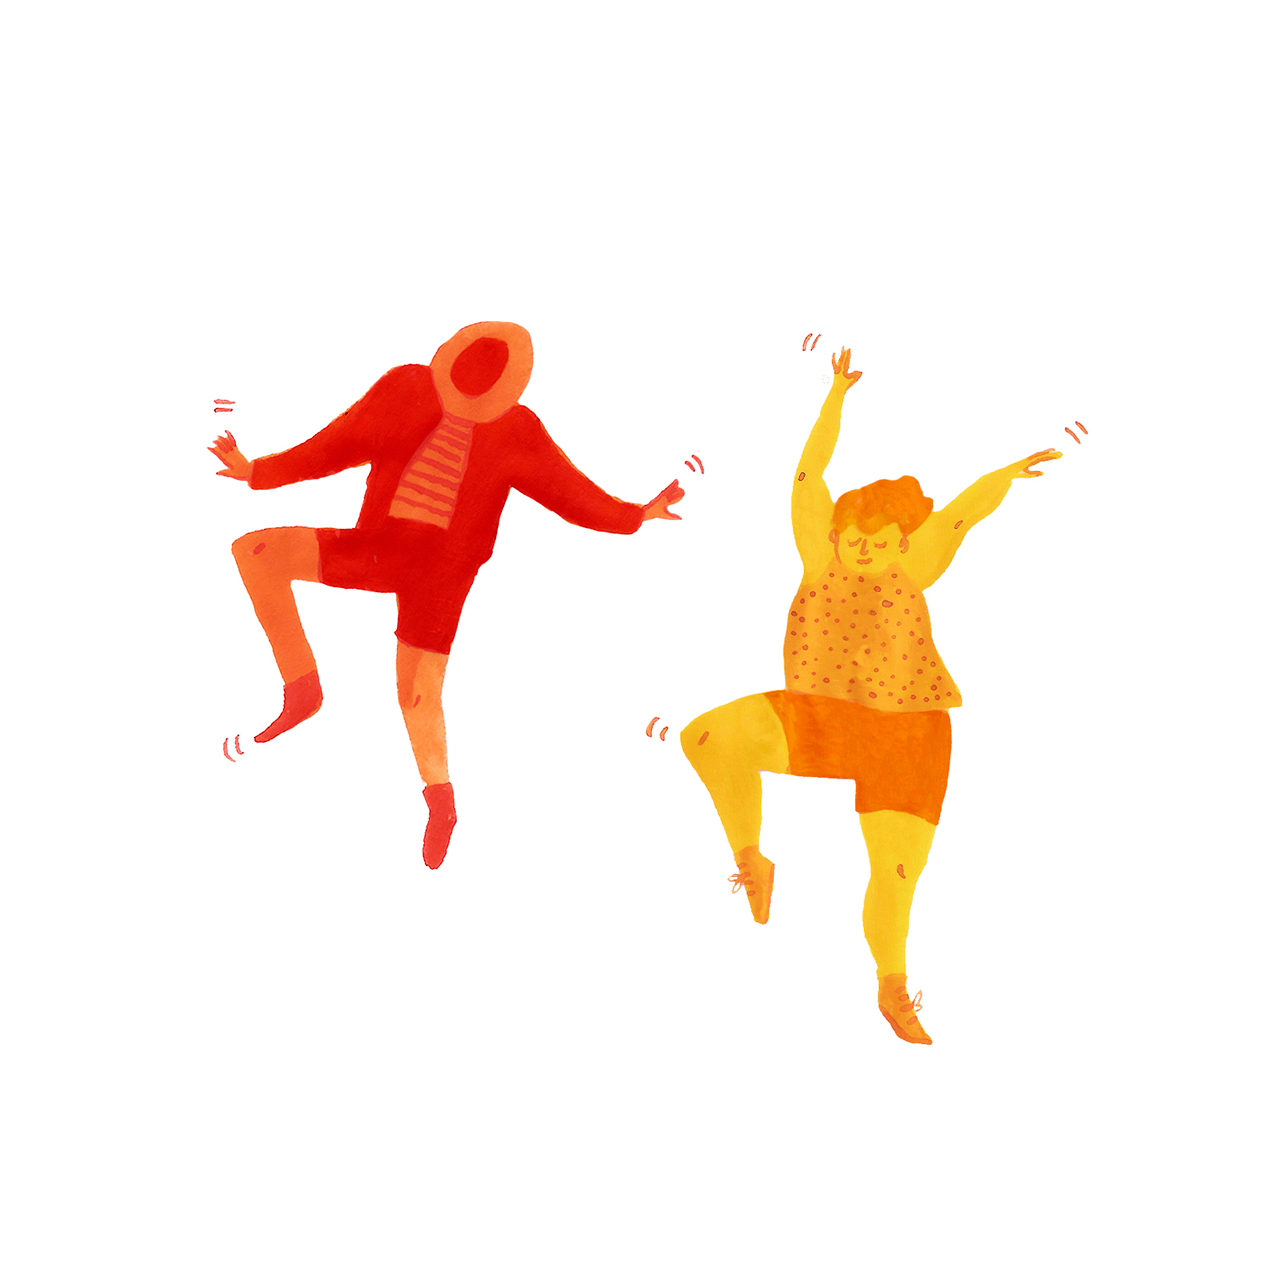 Two illustrated characters dancing